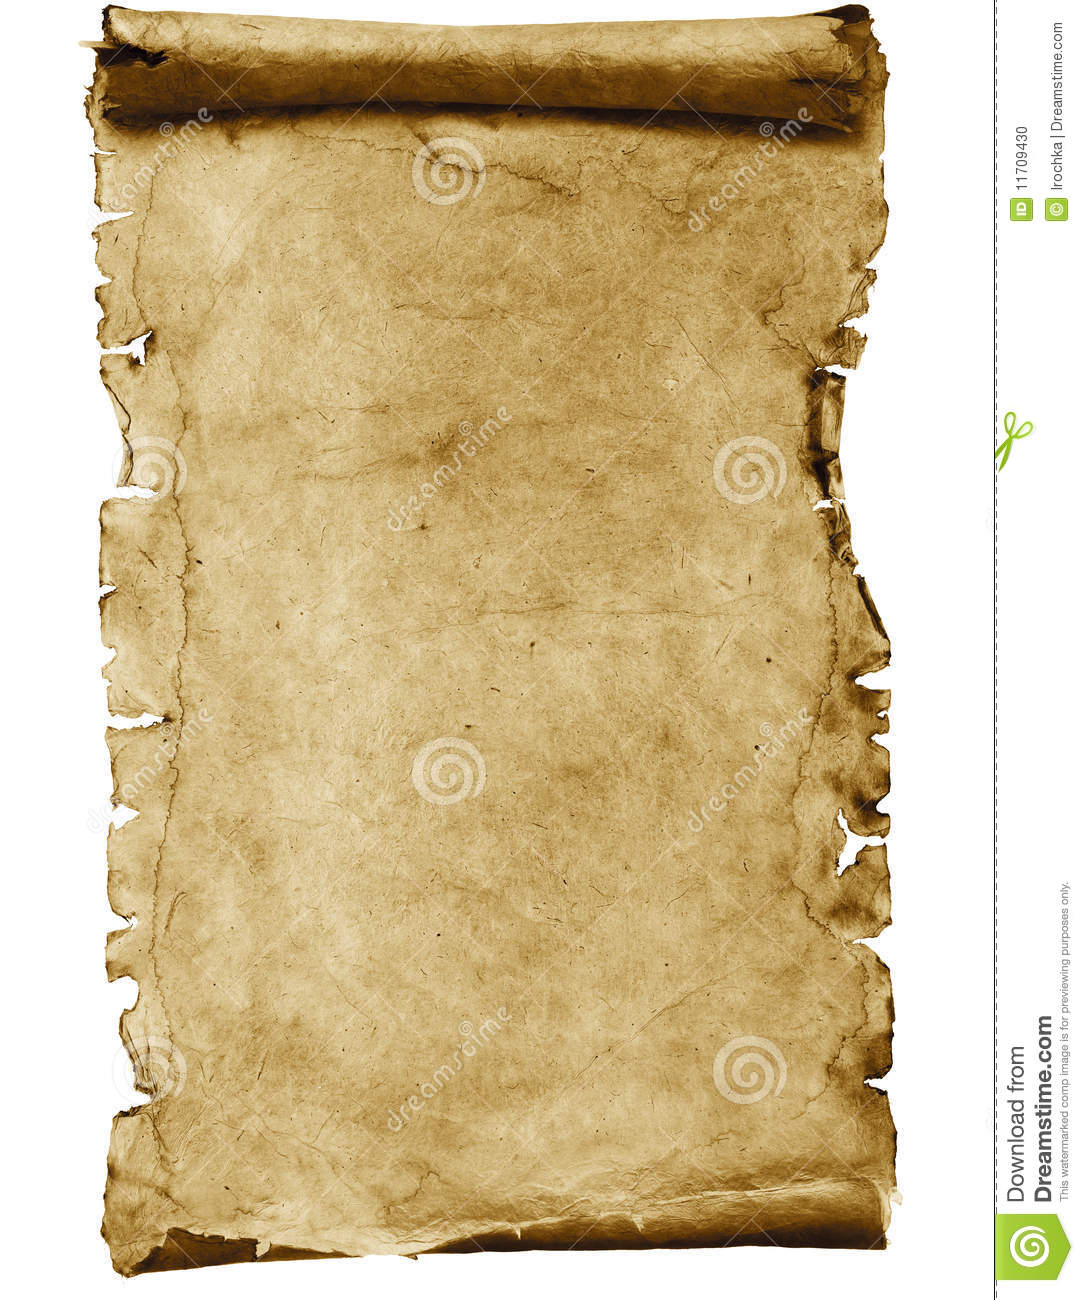 Blank parchment scroll stock photo. Image of empty ...